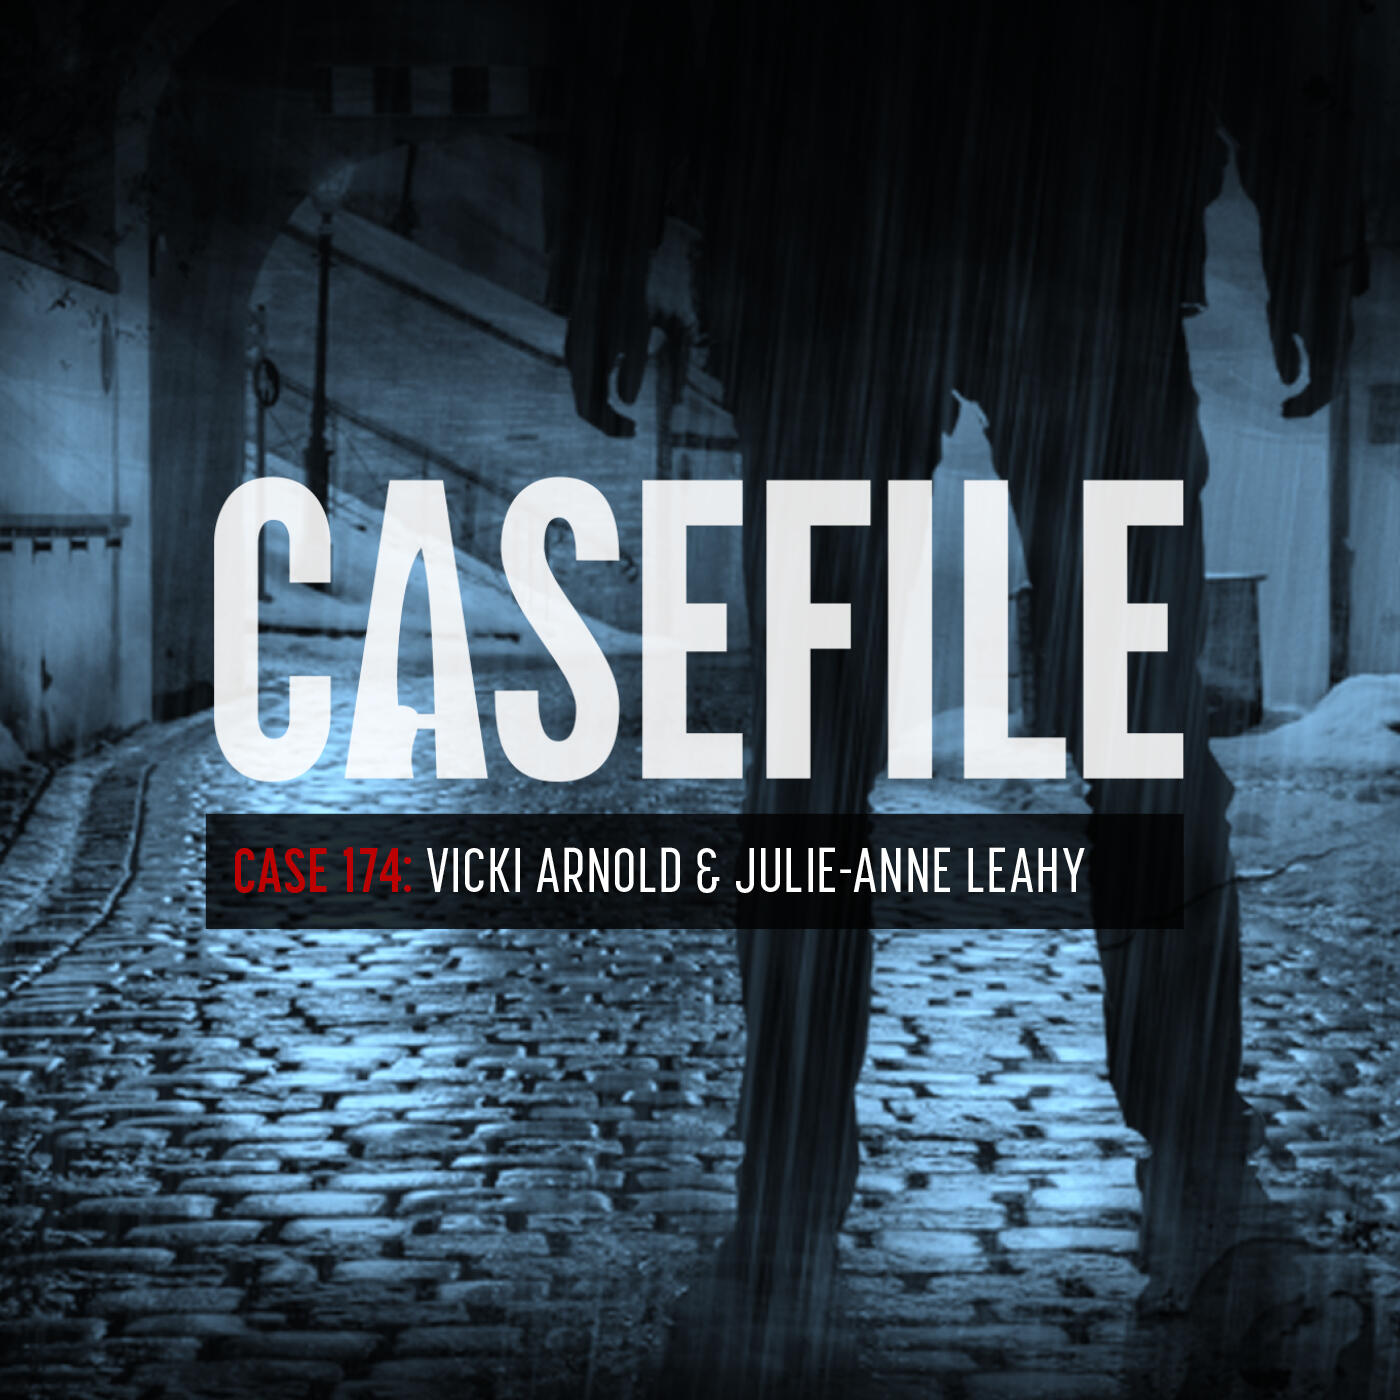 Case 174: Vicki Arnold and Julie-Anne Leahy